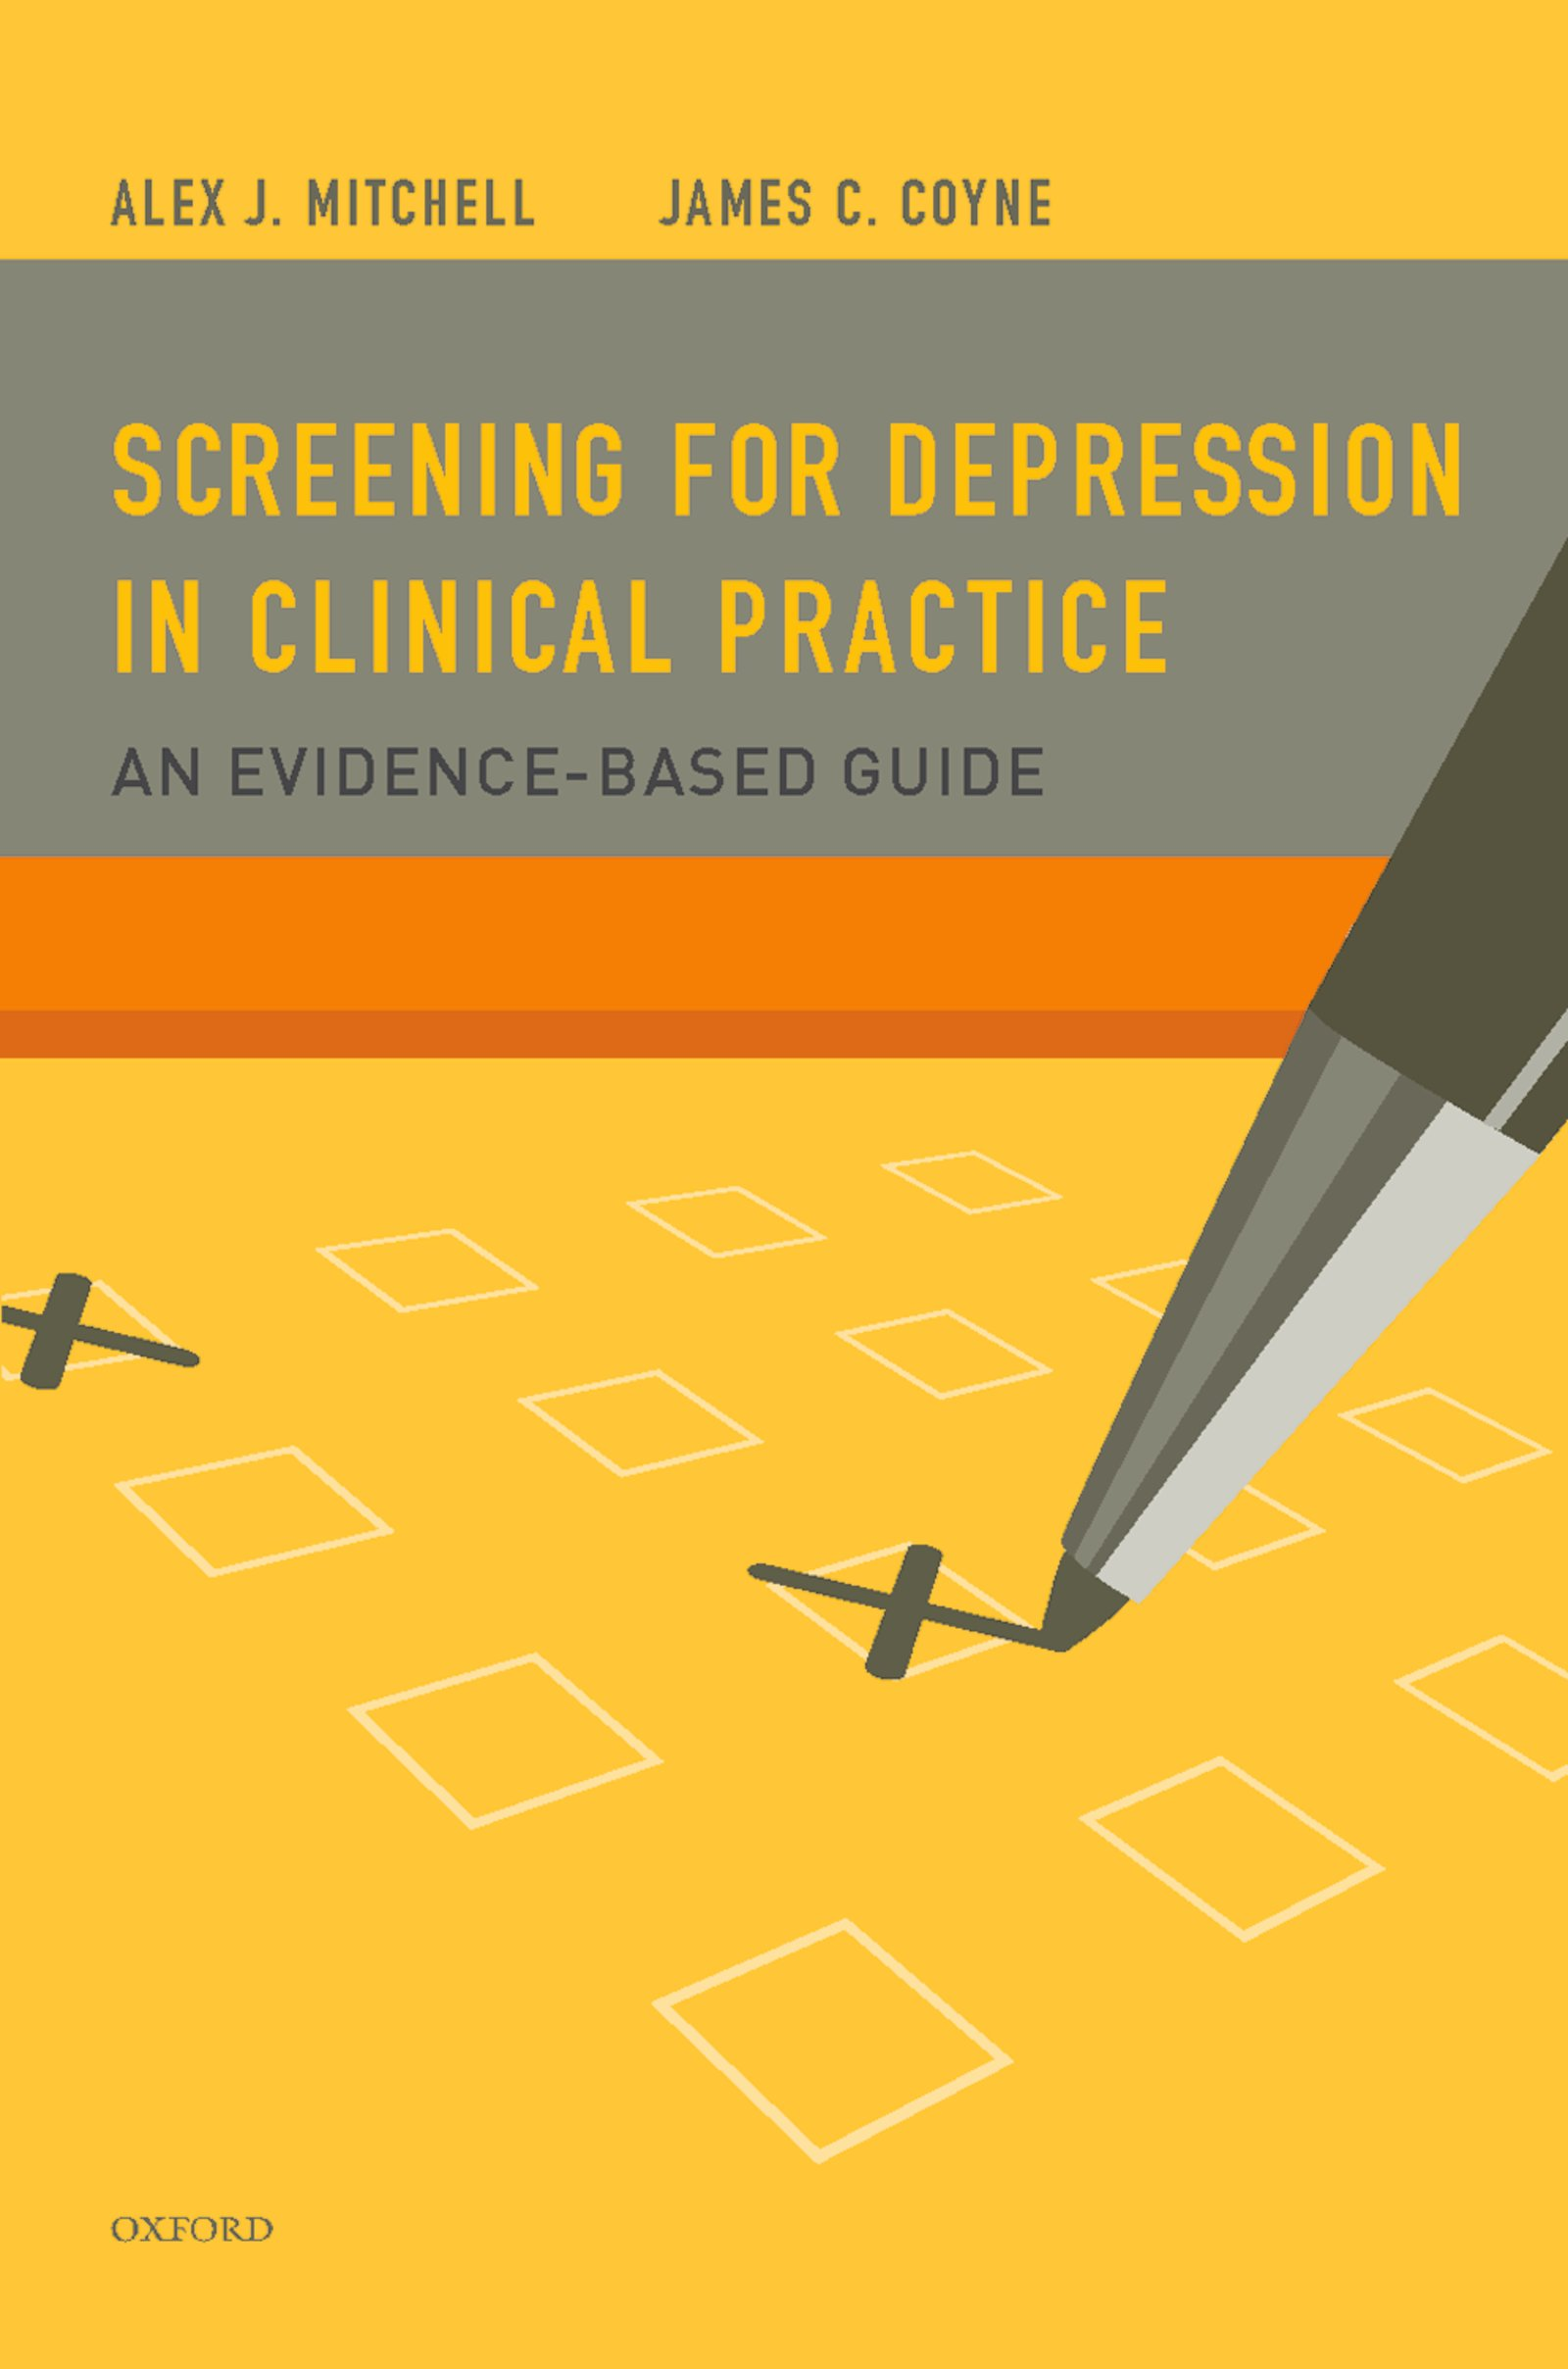 Screening for Depression in Clinical PracticeAn Evidence-Based Guide